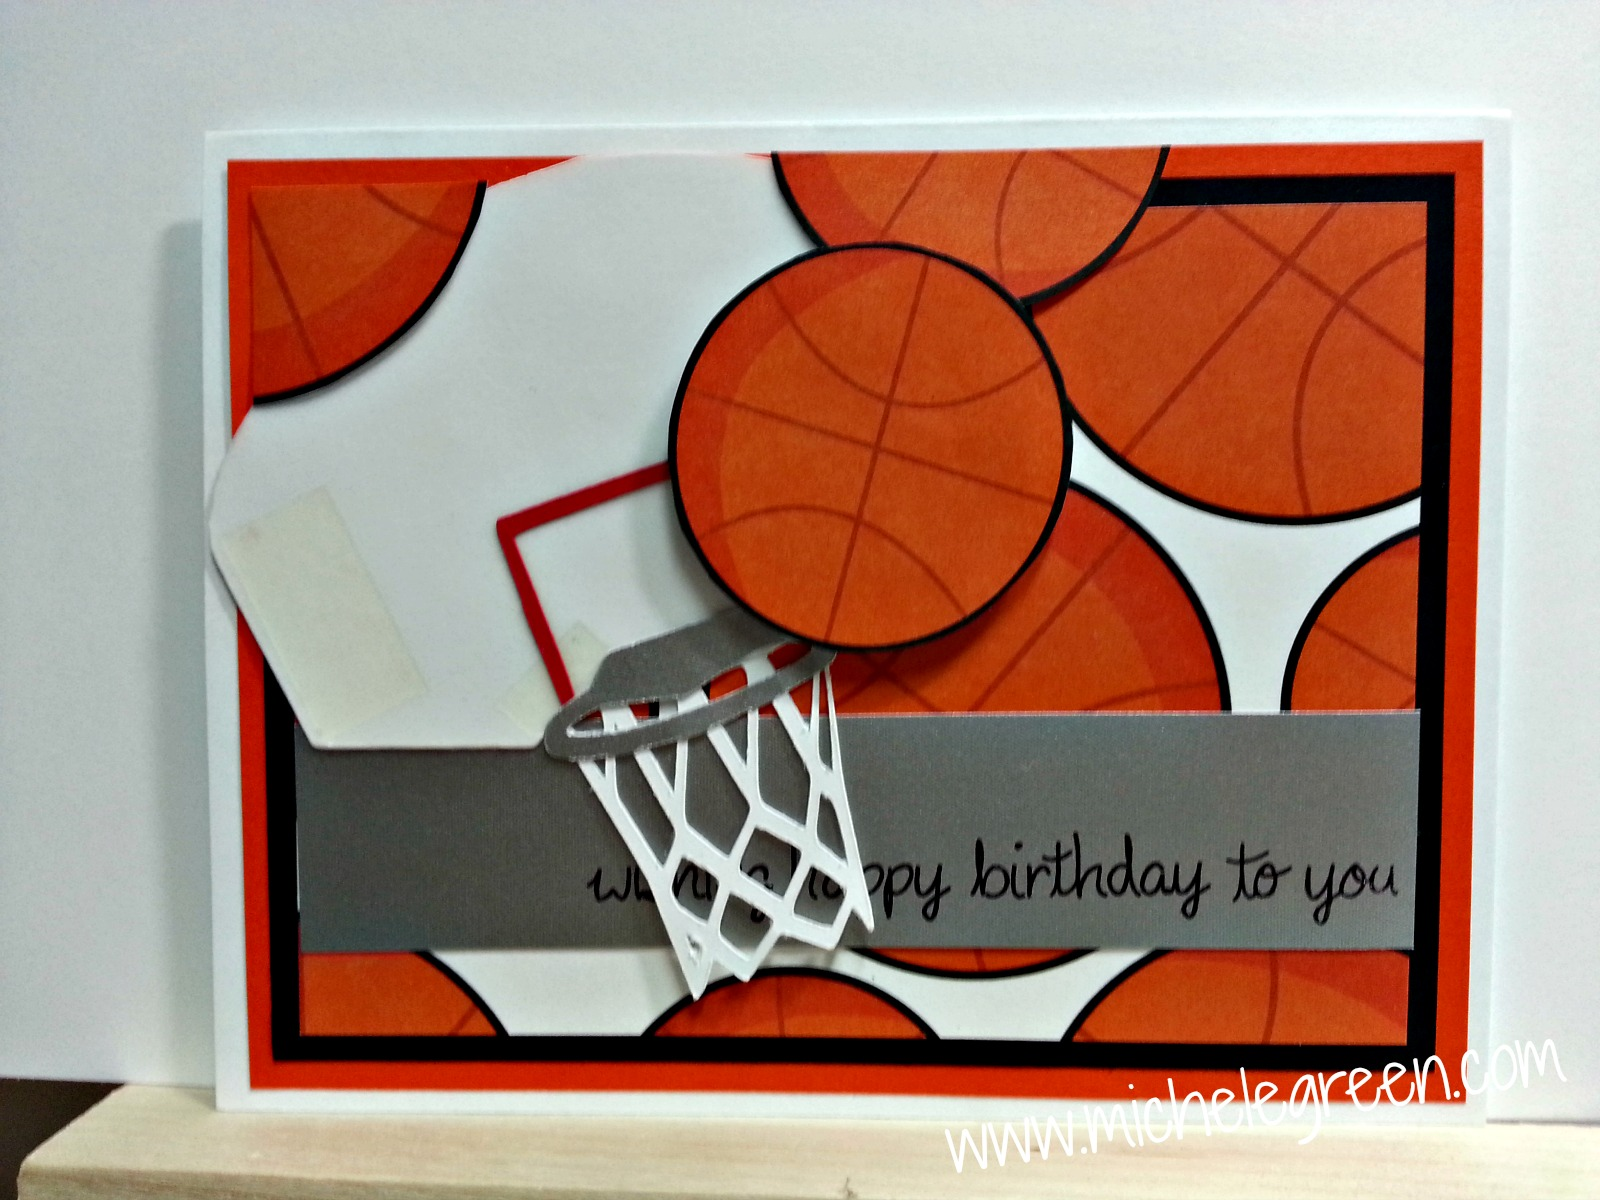 Michelegreen basketball card april 6th i shared this basketball birthday card over on cricut fanatics i made this for a nephew hope you enjoy bookmarktalkfo Image collections